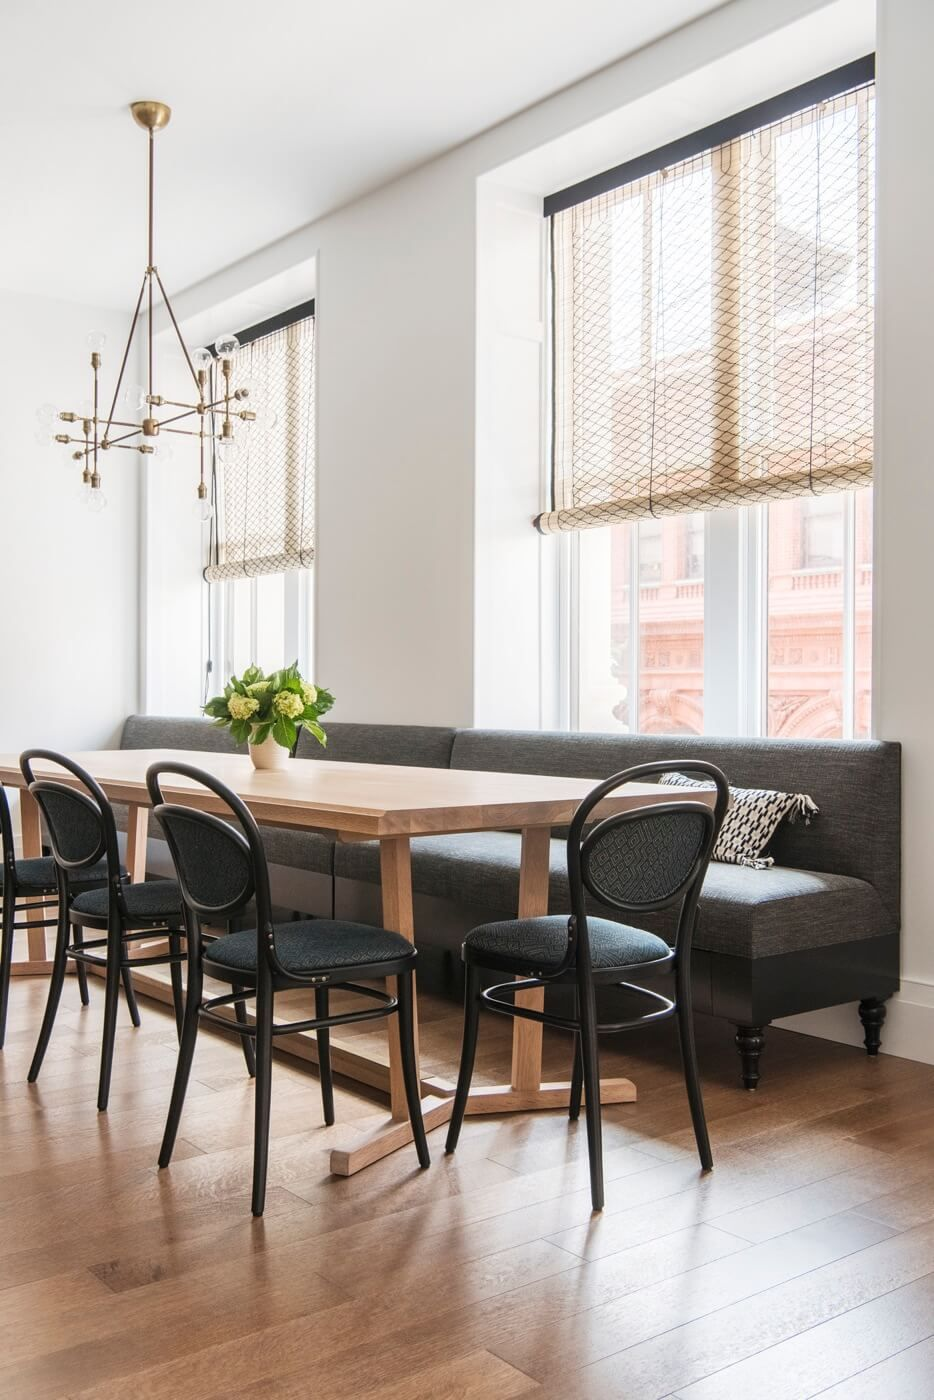 dining room bench table | Interior Design Ideas Brooklyn Ensemble Architecture ...